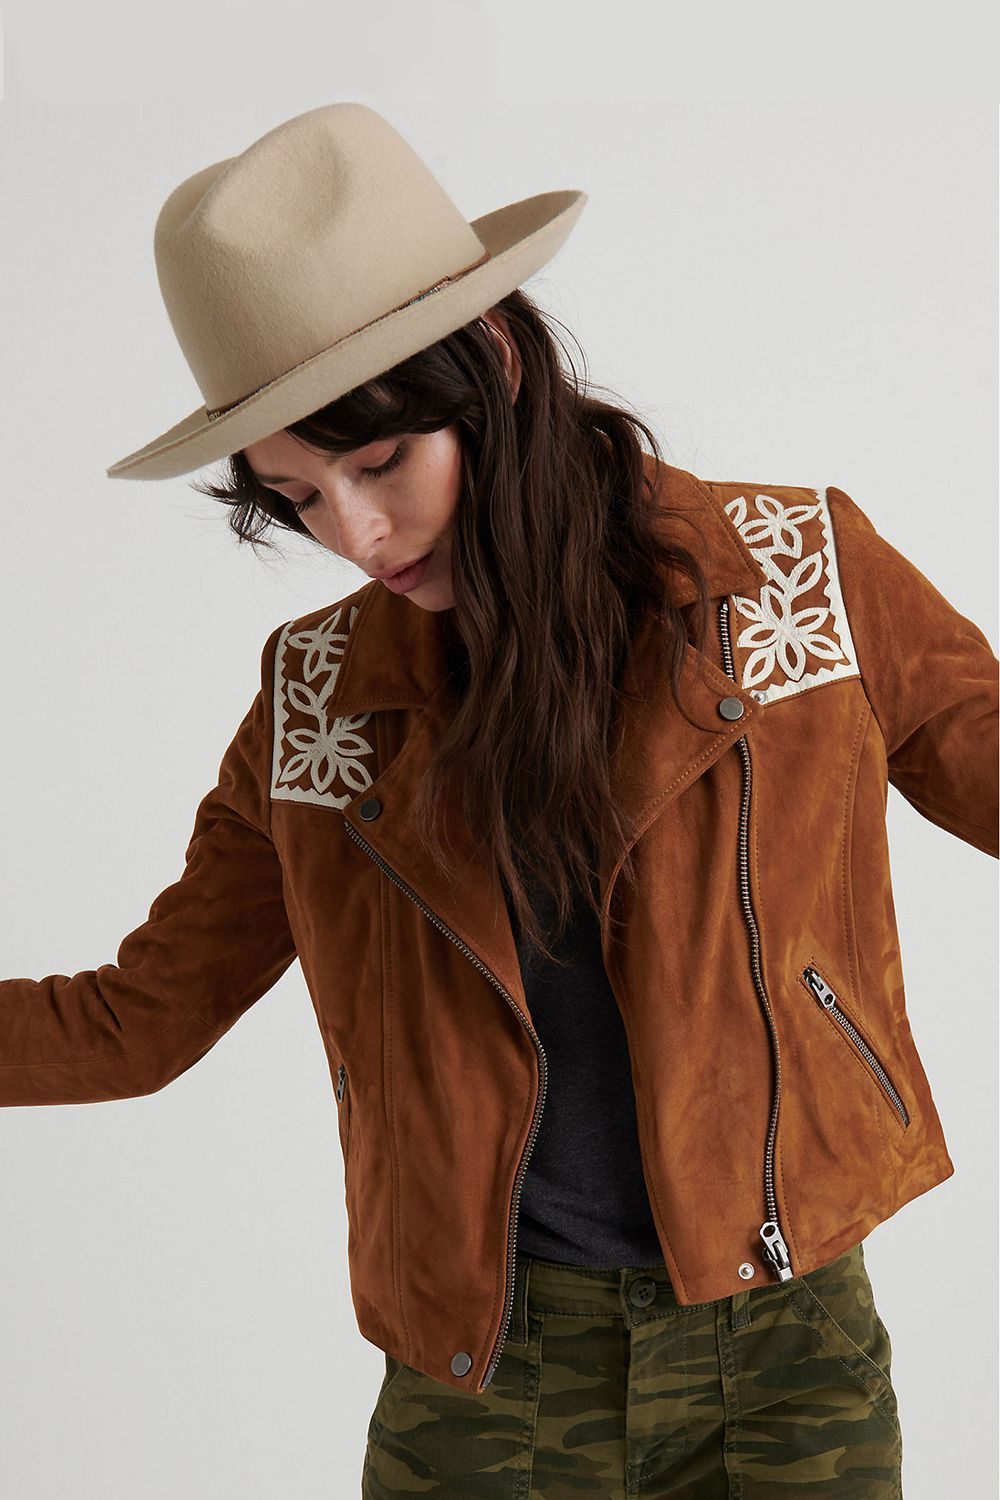 Festival Fringe Lucky Brand $599.00 SHOP IT Coachella may not be your thing, but you can still manifest warm desert vibes with this western fringe jacket.